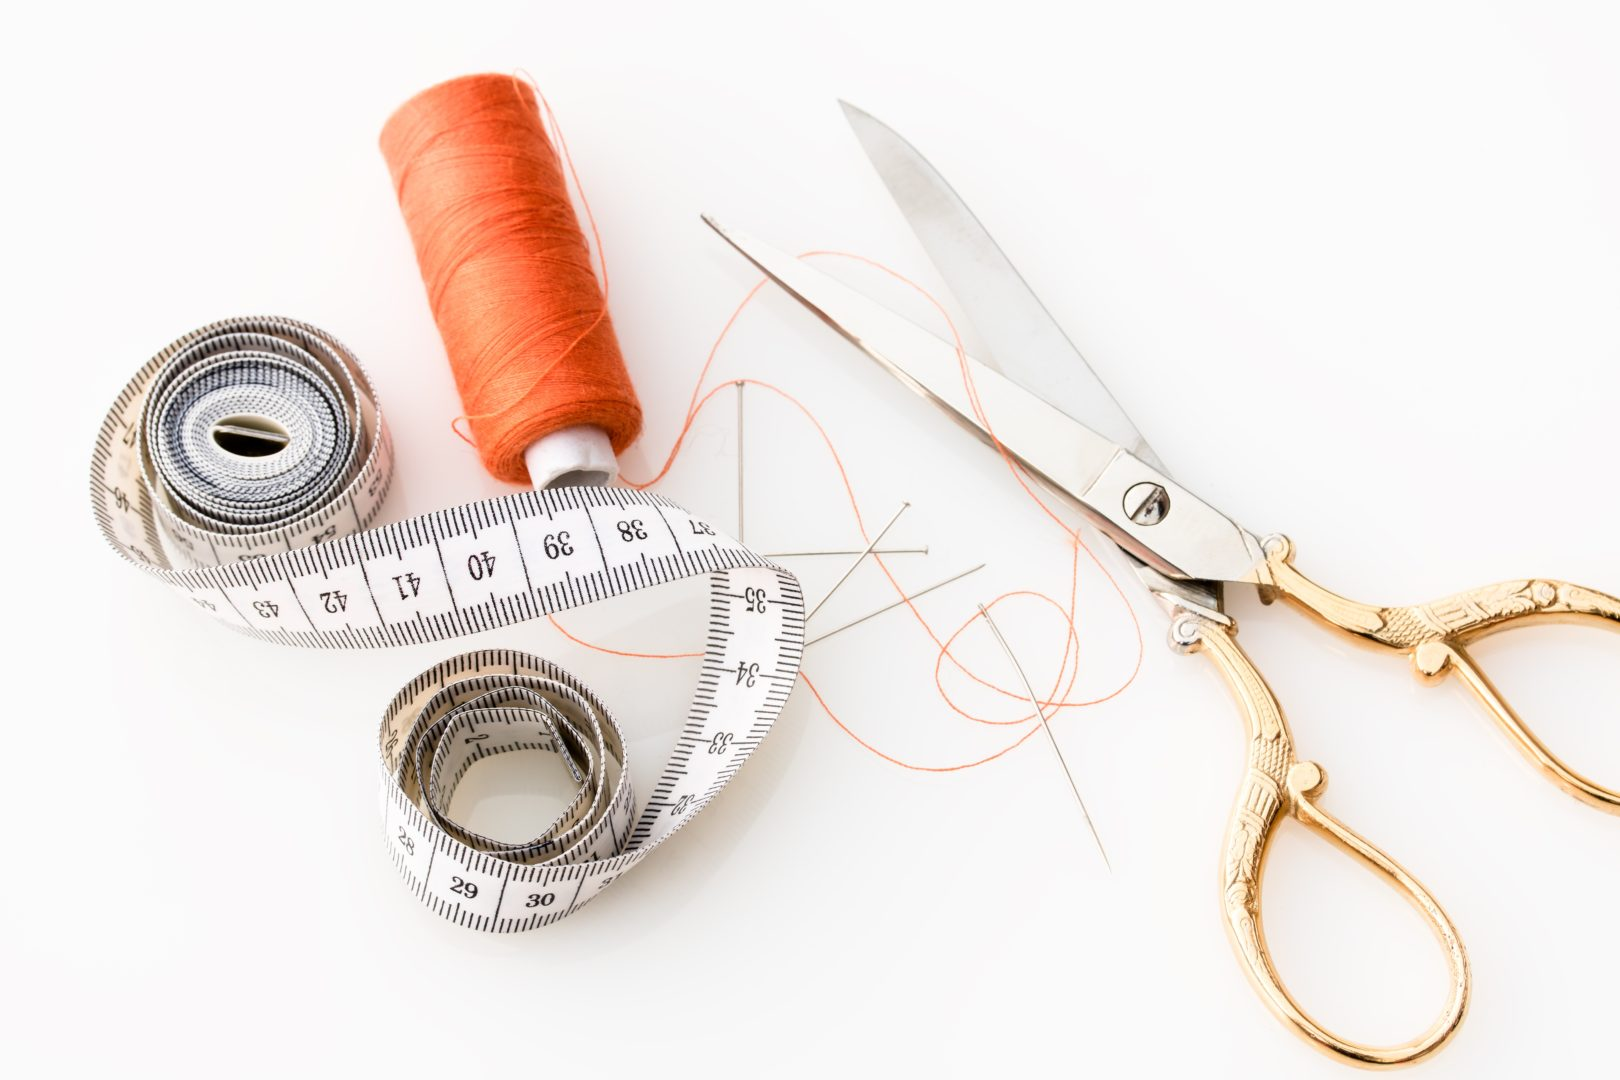 Scissors, pins, orange thread and tape measurer sitting on white table